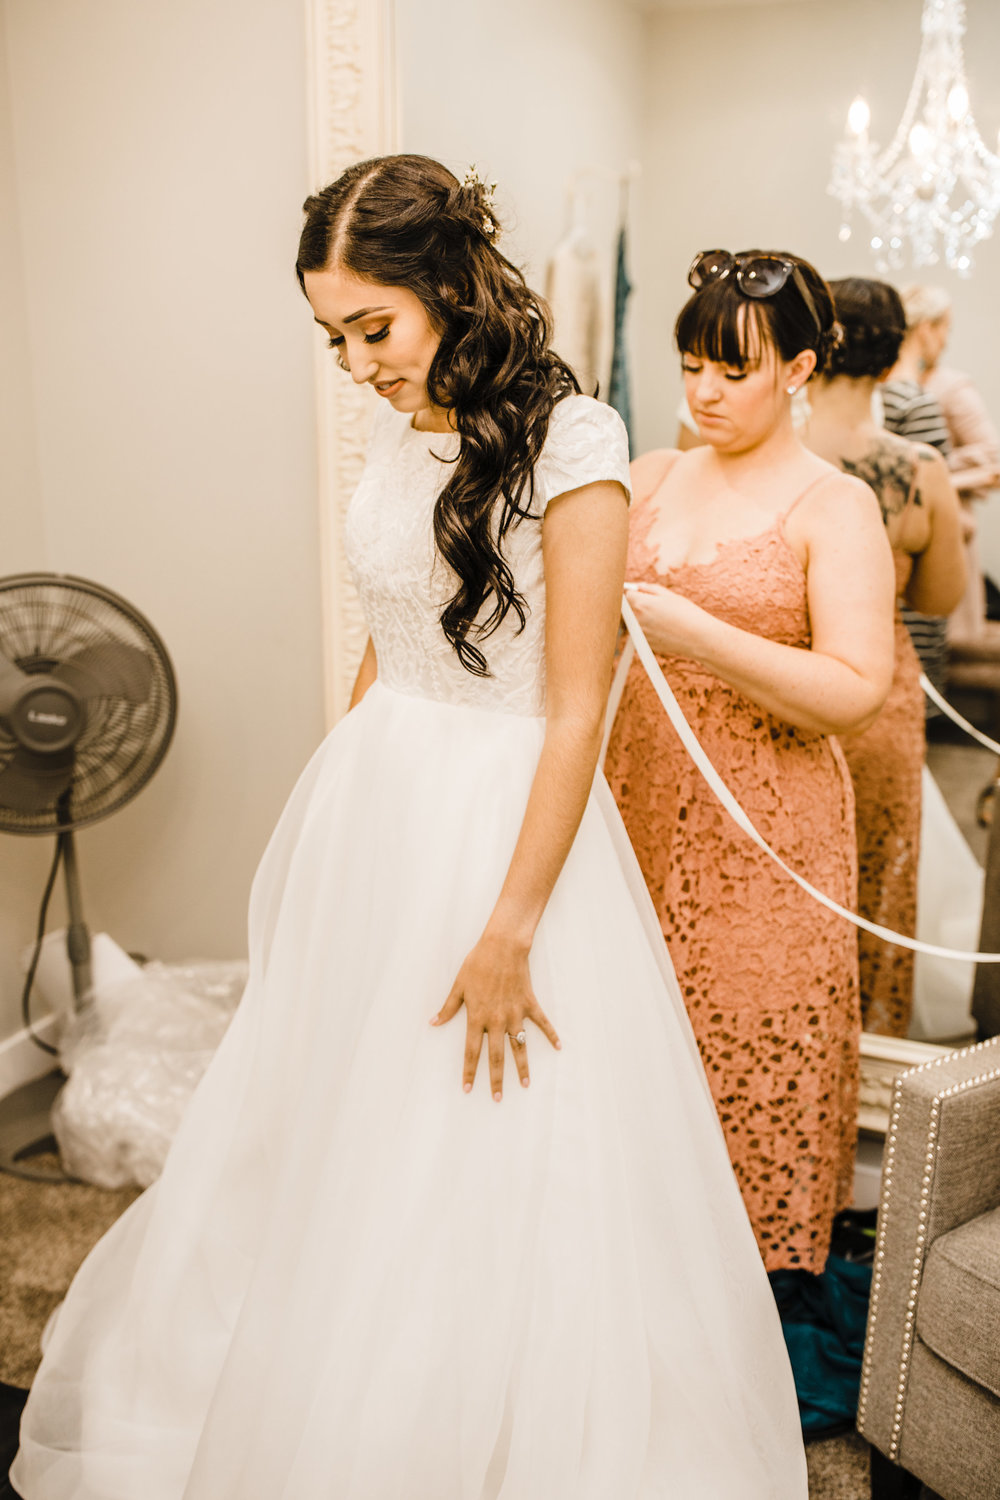 bride getting ready for the wedding day wedding dress tied up with ribbon bridesmaid helping bride into wedding dress orem utah wedding photography